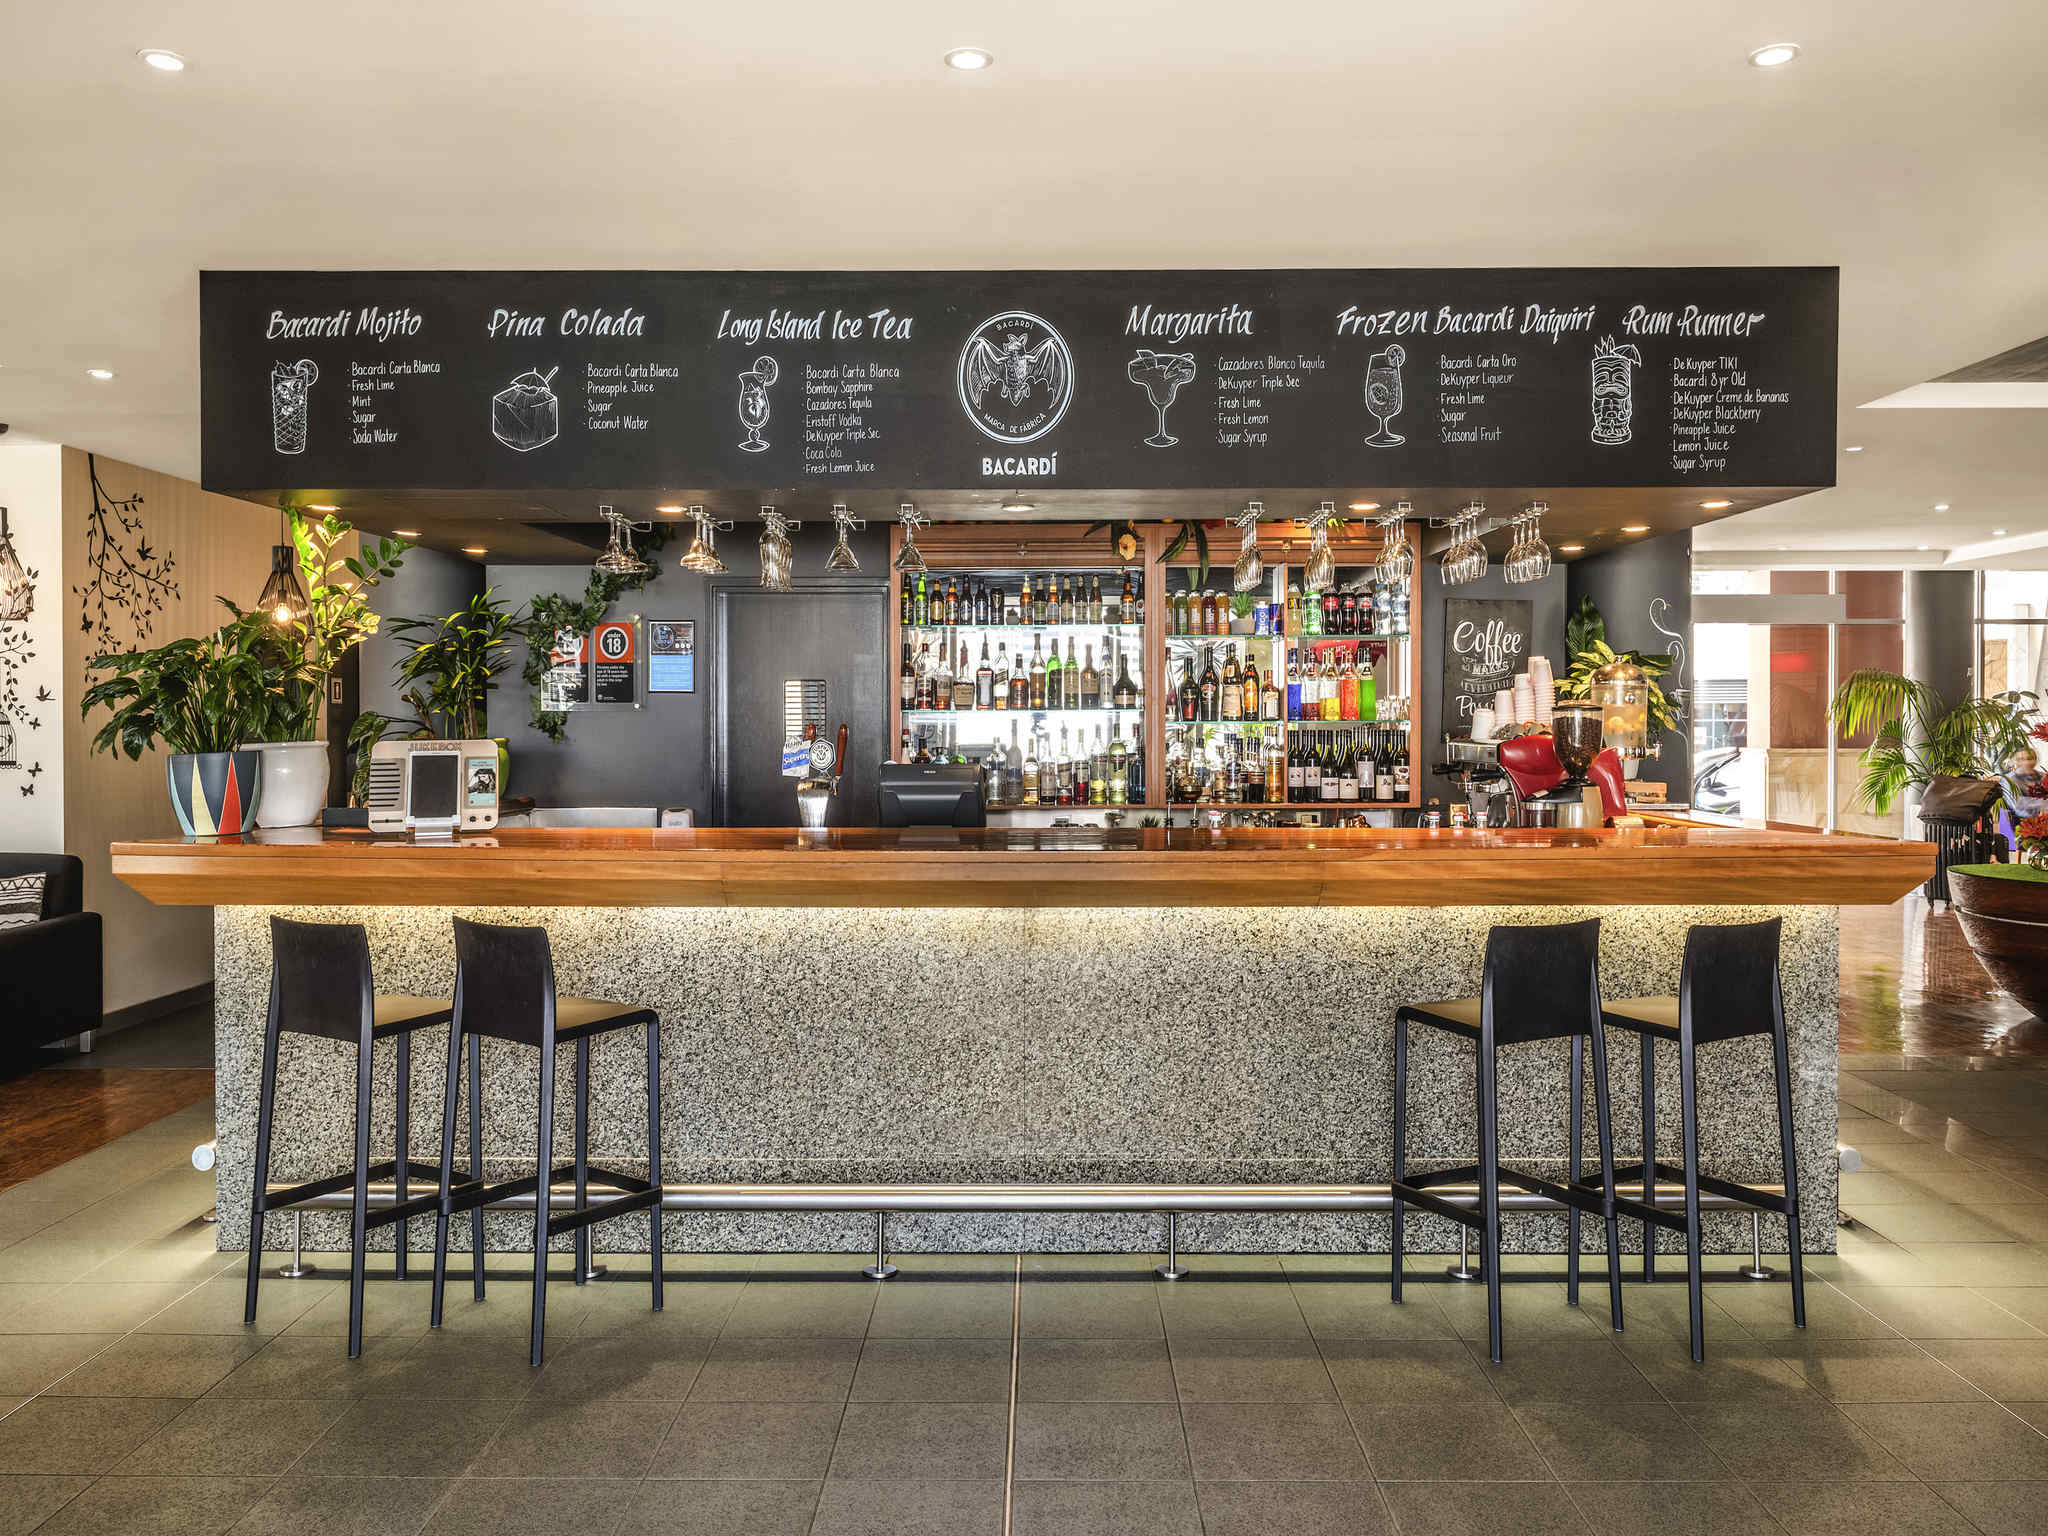 ibis Sydney Darling Harbour - AccorHotels on cute home office designs, best home office designs, rustic home office designs,